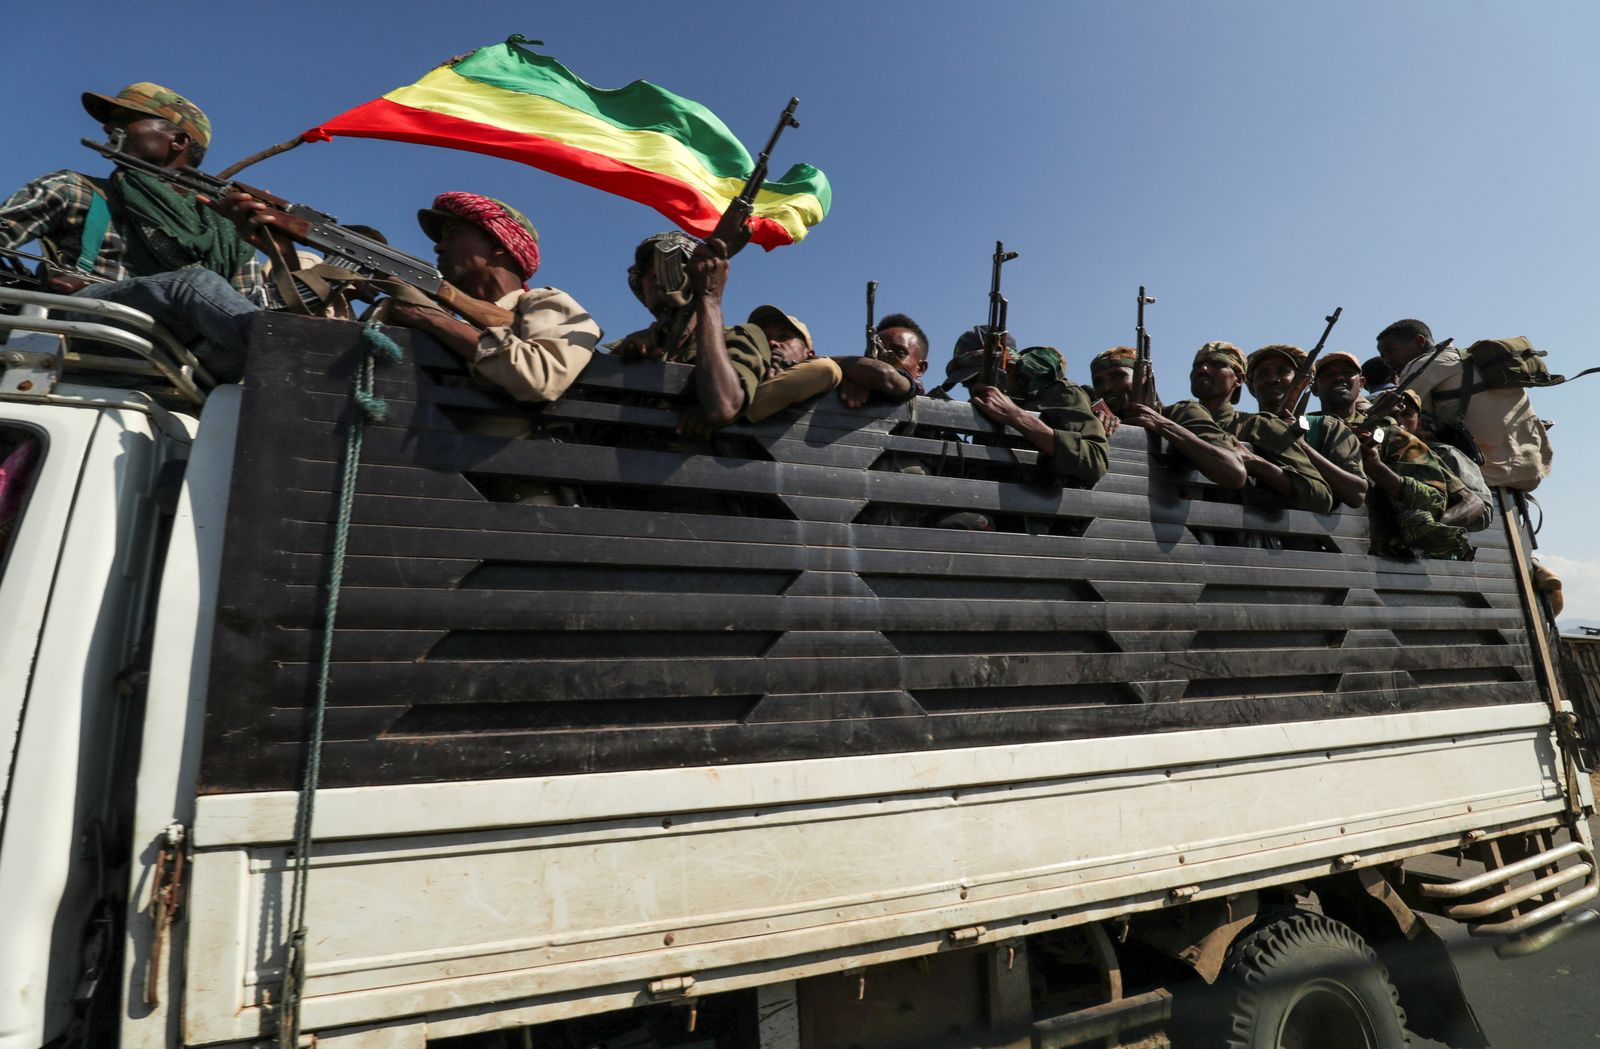 Members of Amhara region militias ride on their truck as they head to face the Tigray People's Liberation Front in Sanja